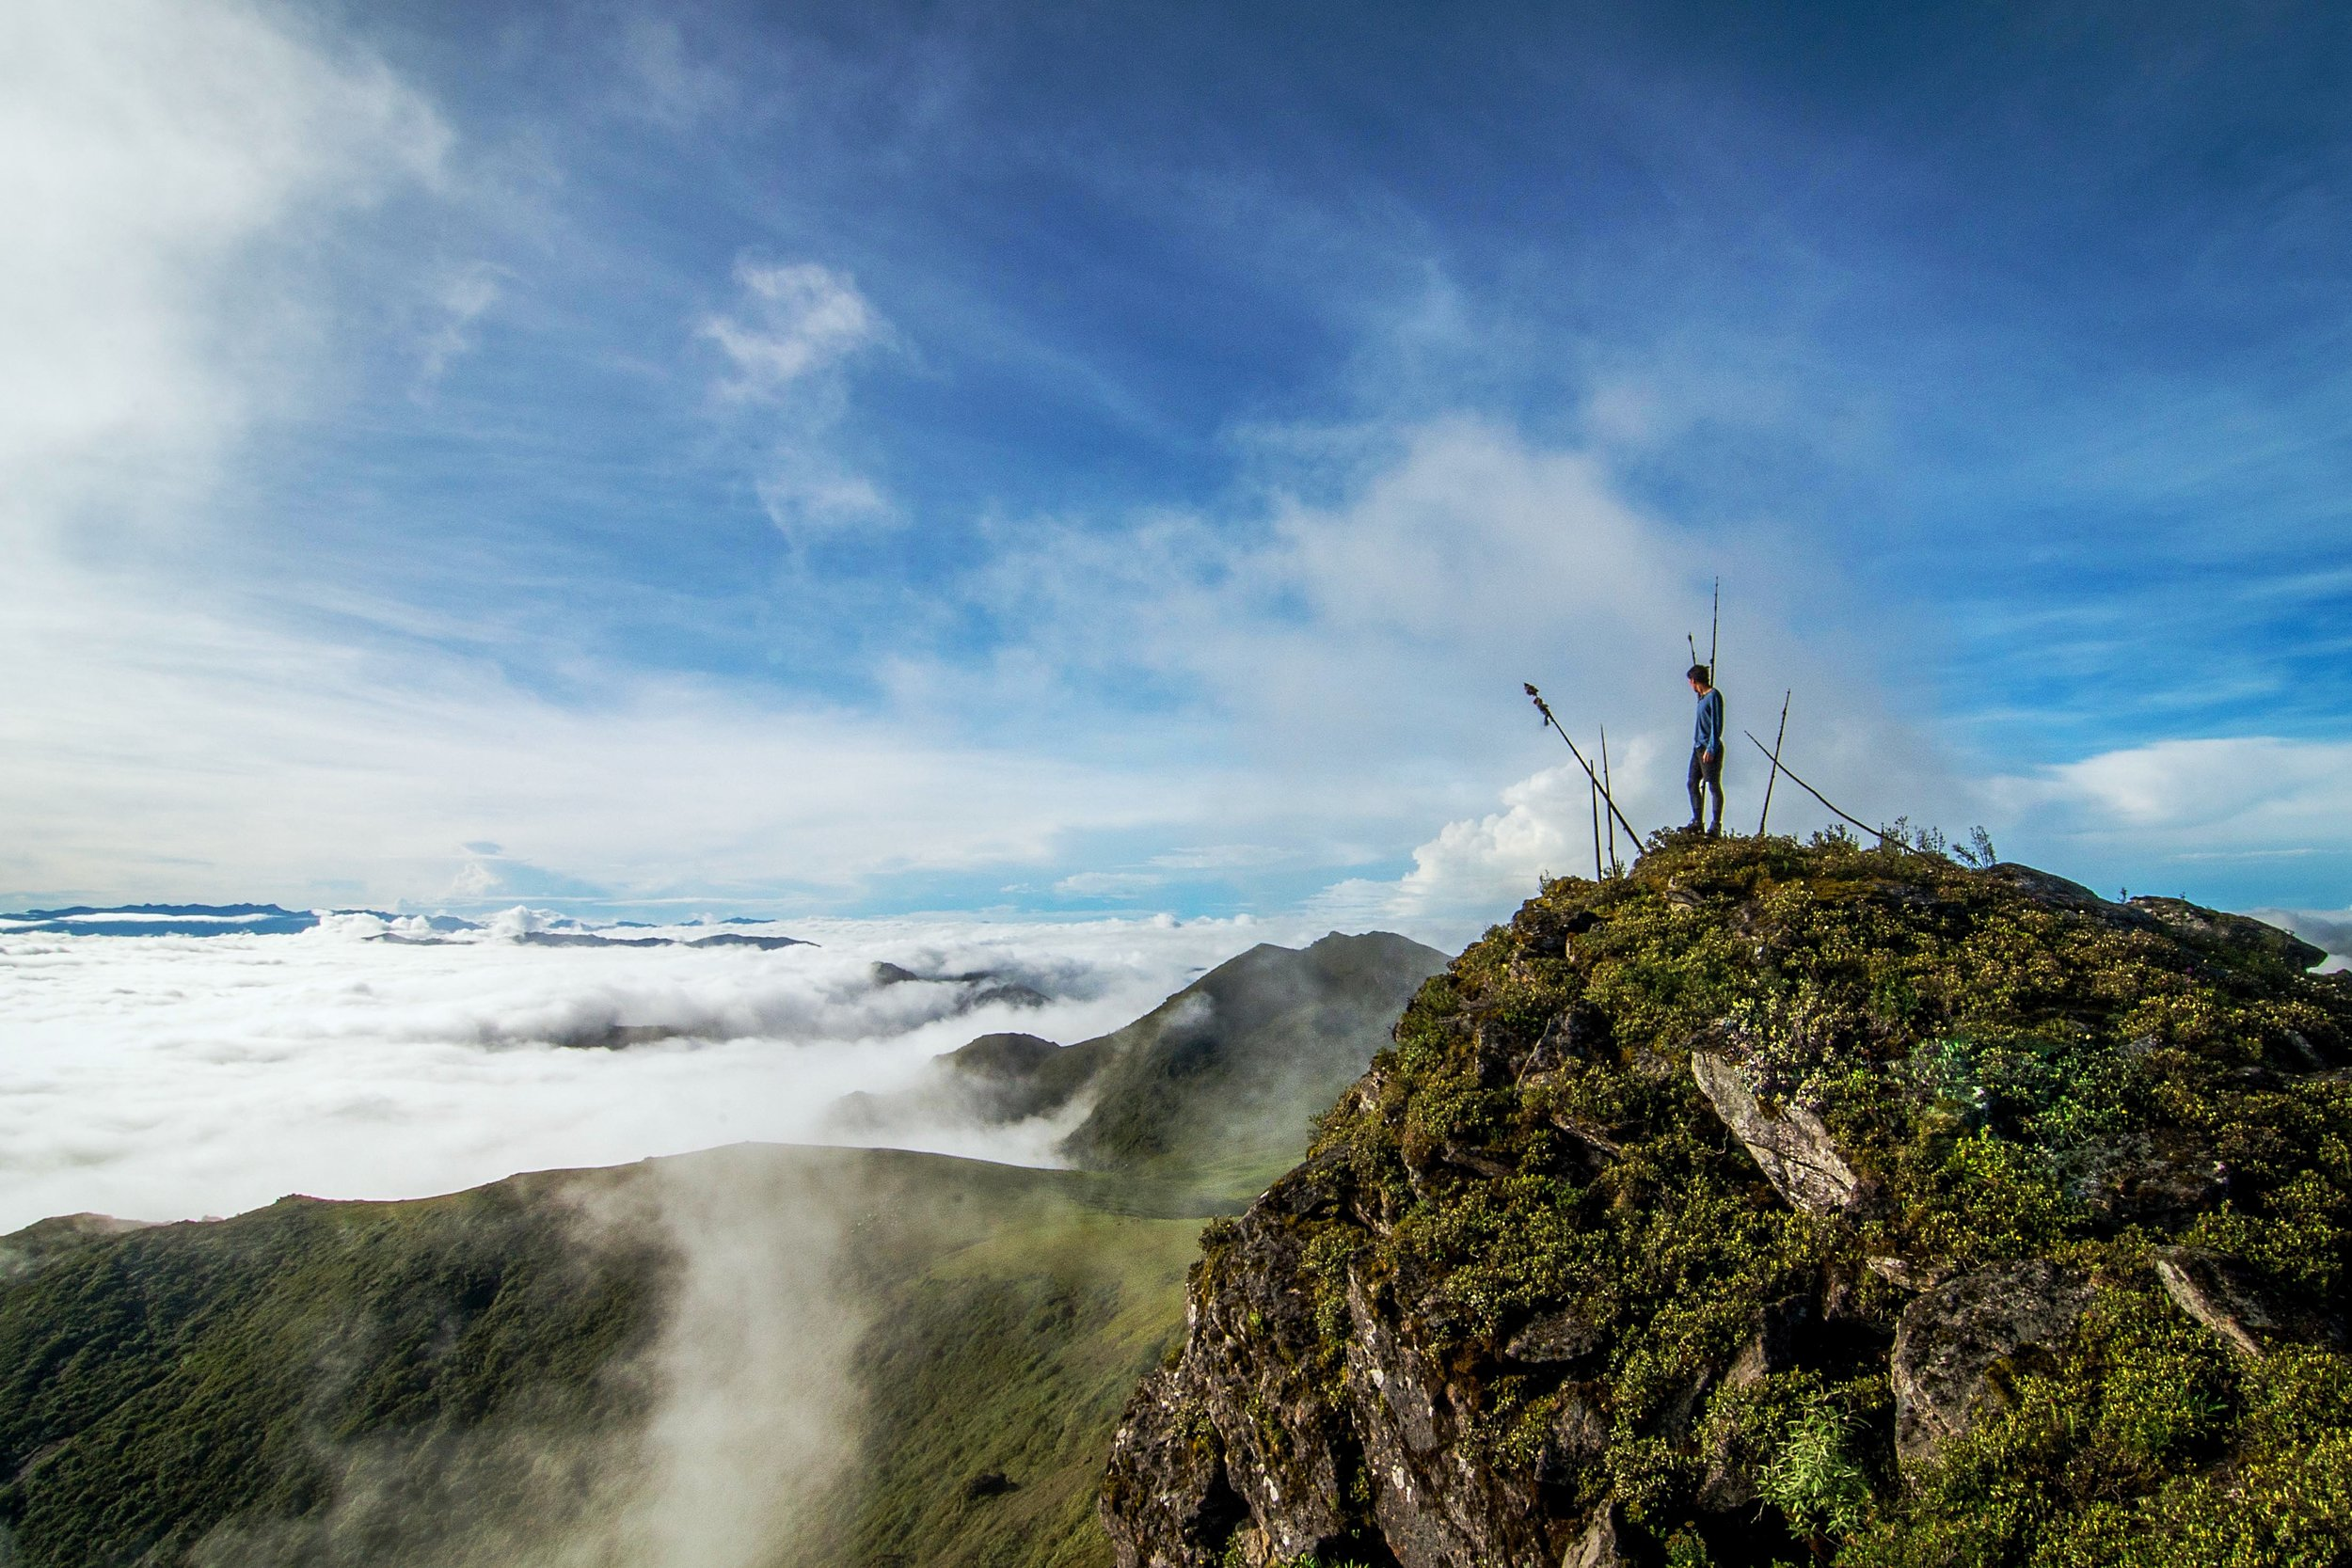 A man stands atop a ledge overlooking the clouds below him in northwestern Bhutan.